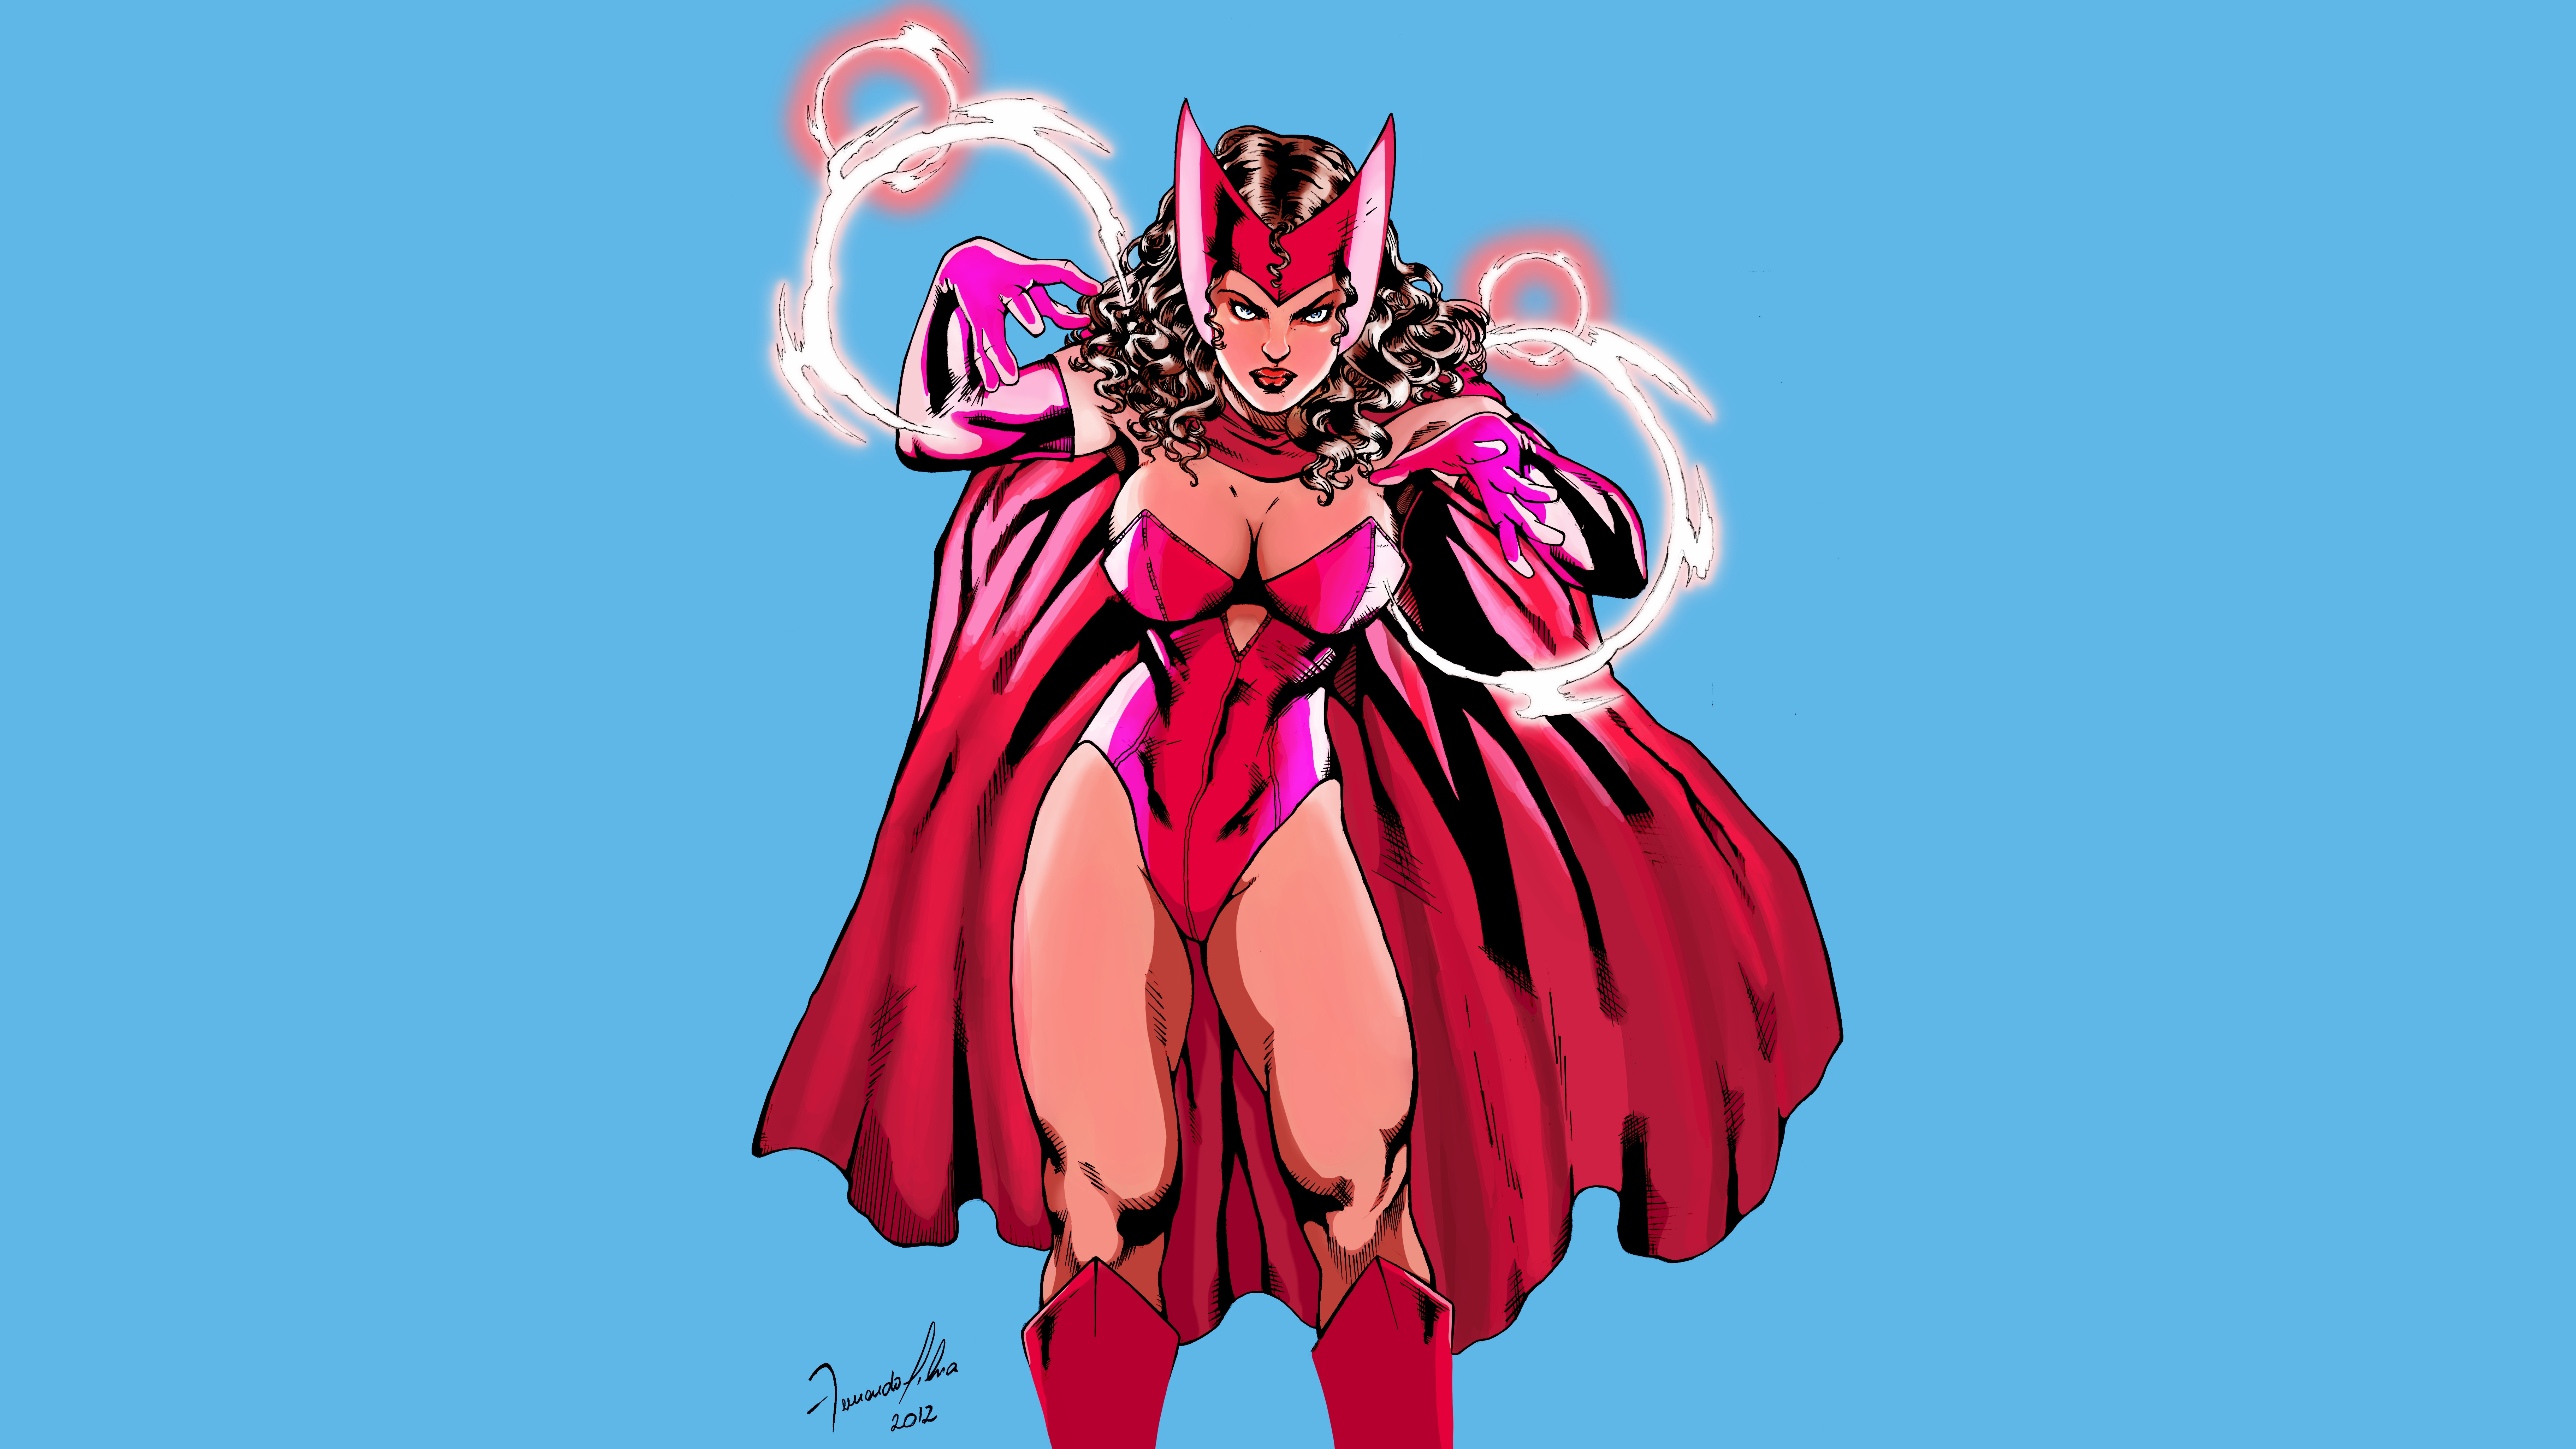 Scarlet Witch Wallpapers Pictures Images HD Wallpapers Download Free Images Wallpaper [1000image.com]